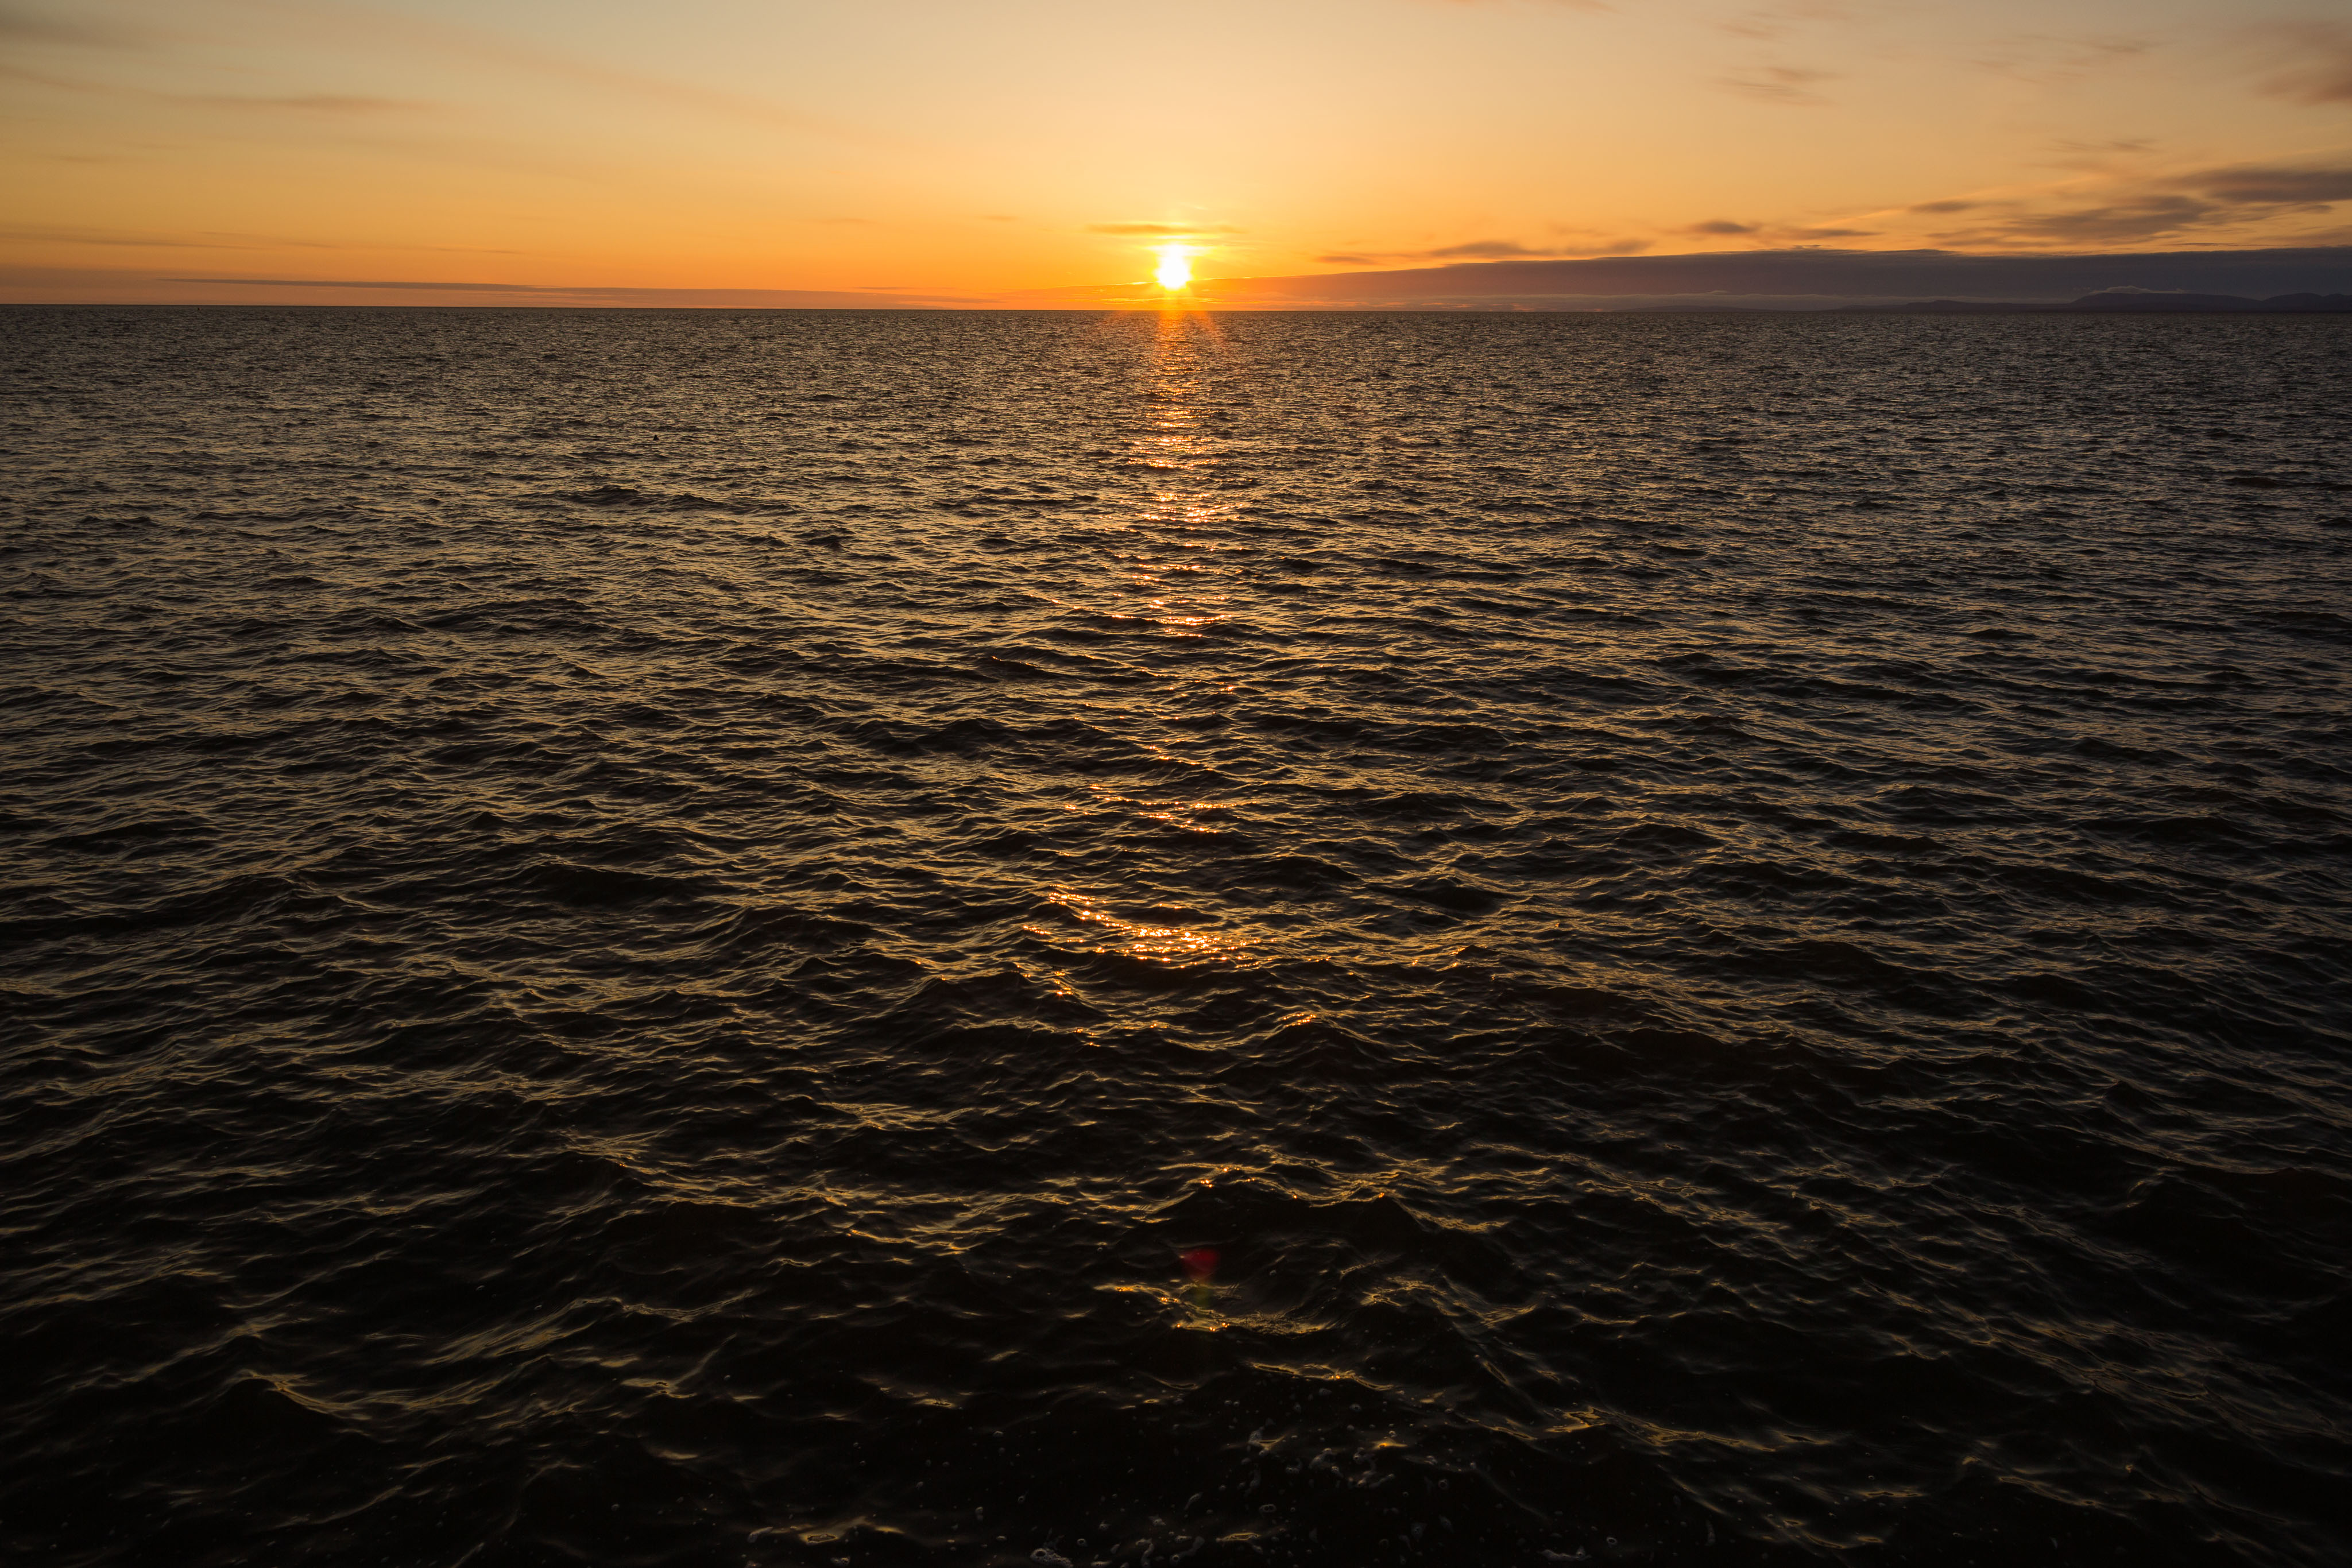 Sunset on the Chukchi Sea in Kotzebue on Monday, August 31, 2015. President Obama will visit the Northwest Arctic community on Wednesday, the first time a president will set foot in the American Arctic. (Loren Holmes / Alaska Dispatch News)